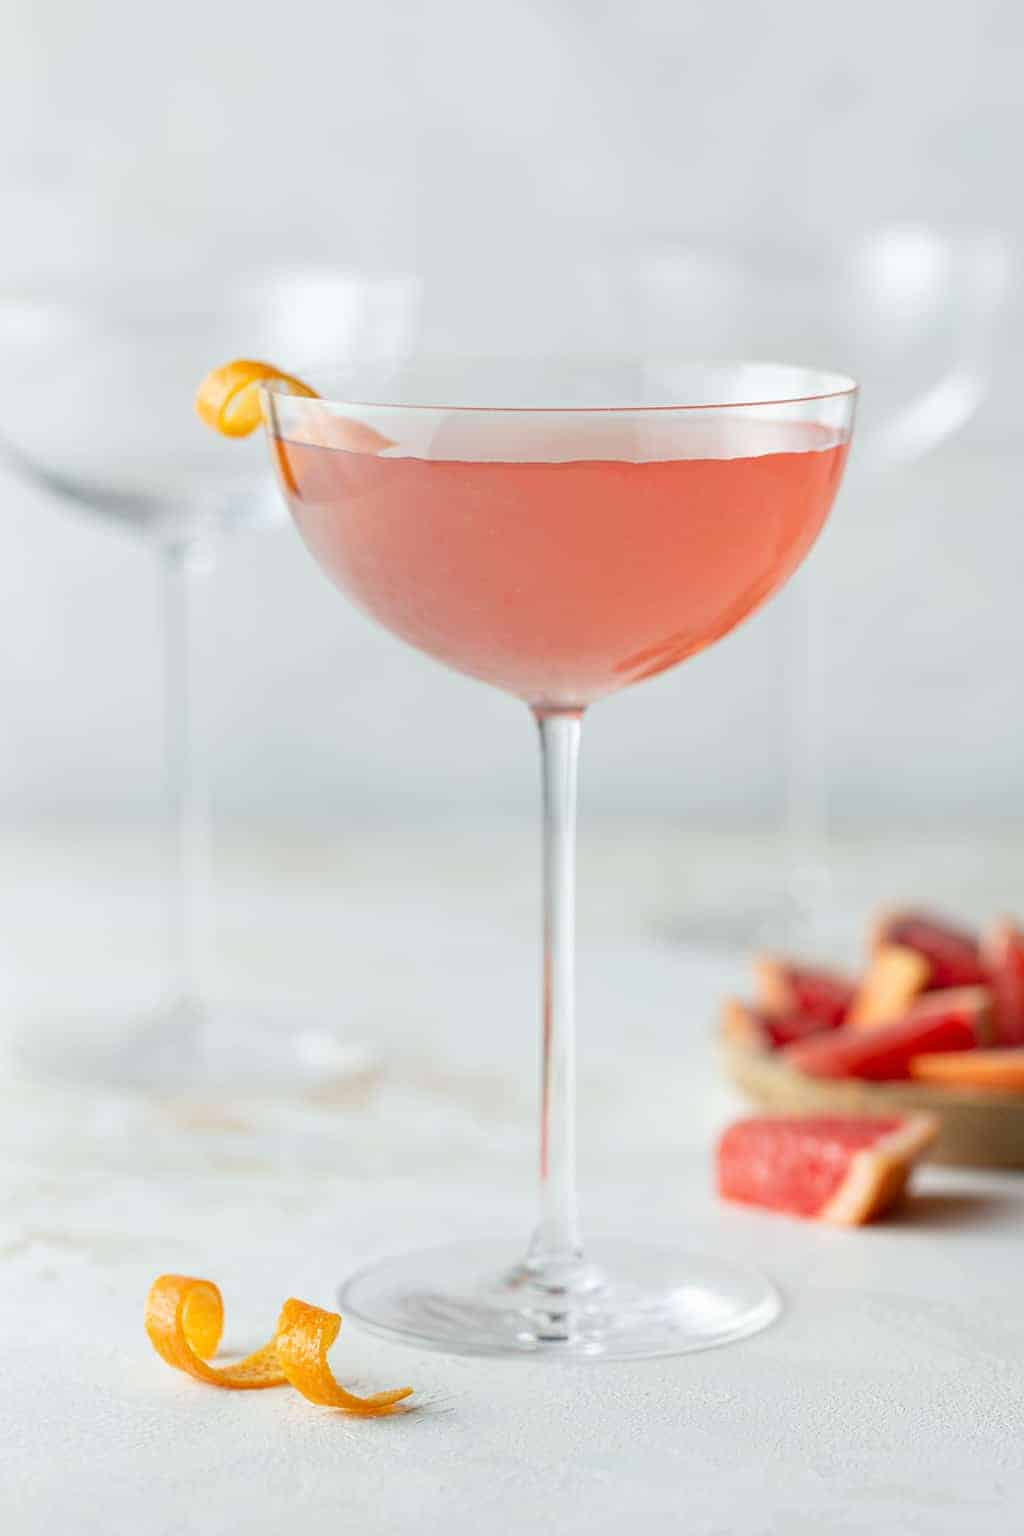 single ruby red grapefruit martini in a tall coupe glass garnished with an orange peel.